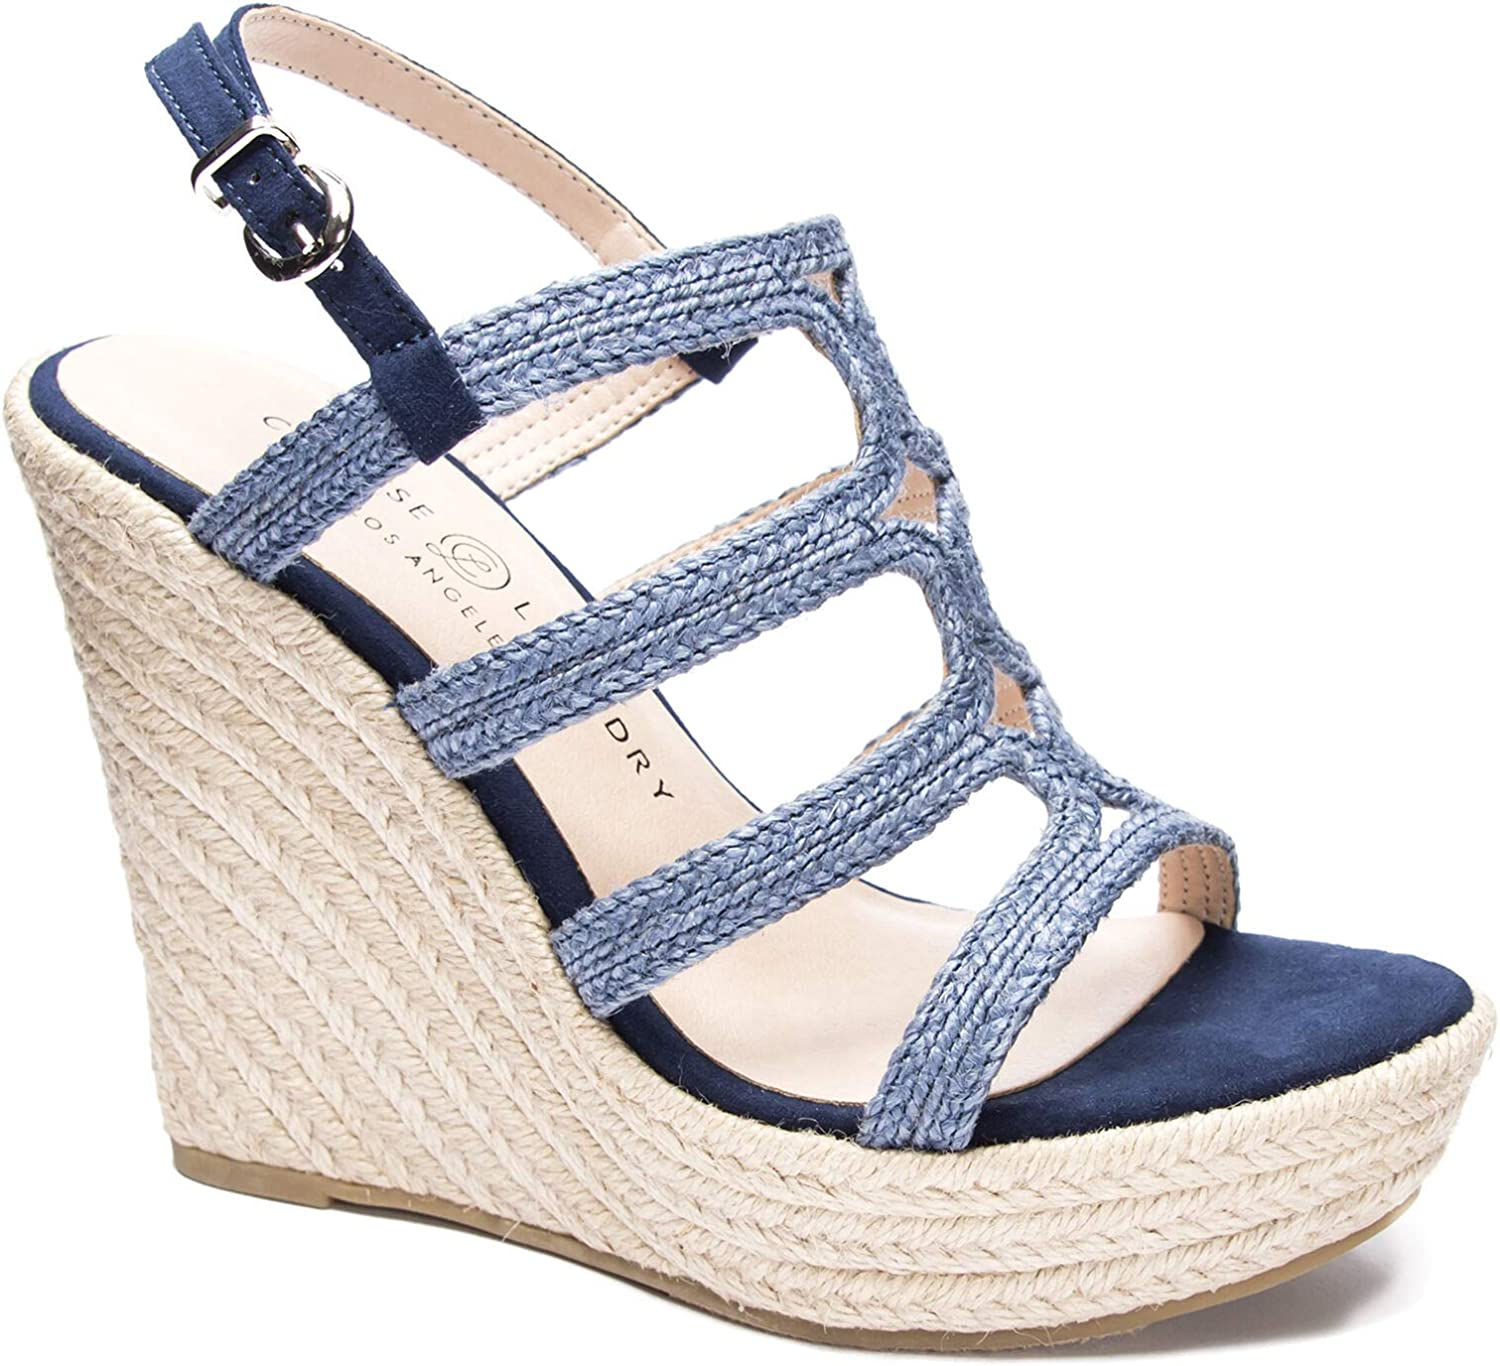 Chinese Laundry Women's Milla Espadrille Wedge Sandal